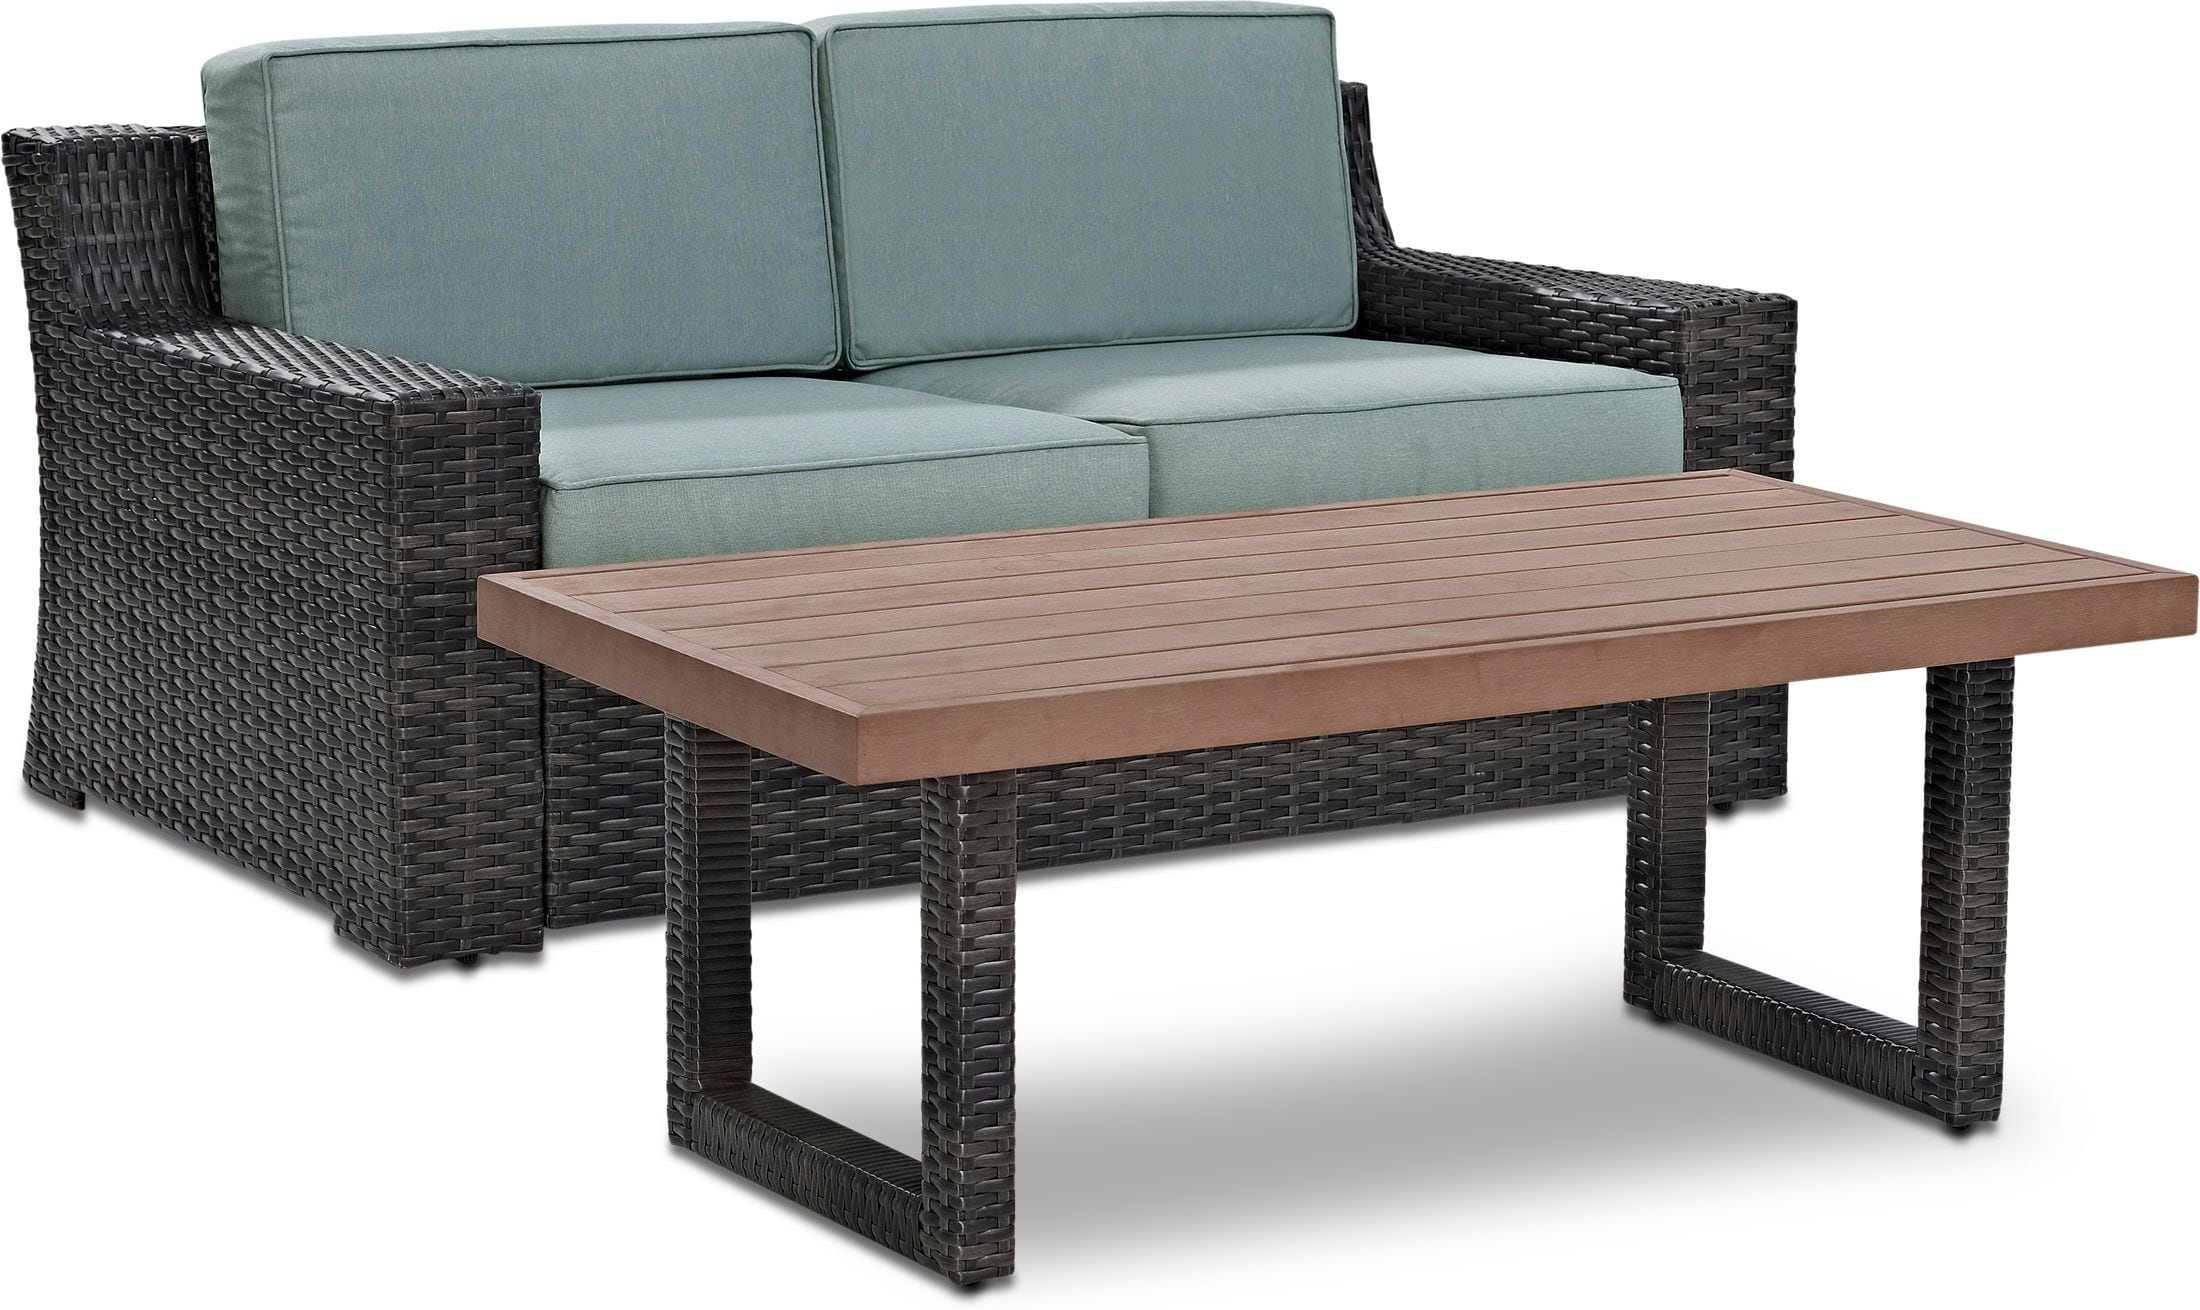 Outdoor Furniture - Tethys Outdoor Loveseat and Coffee Table Set